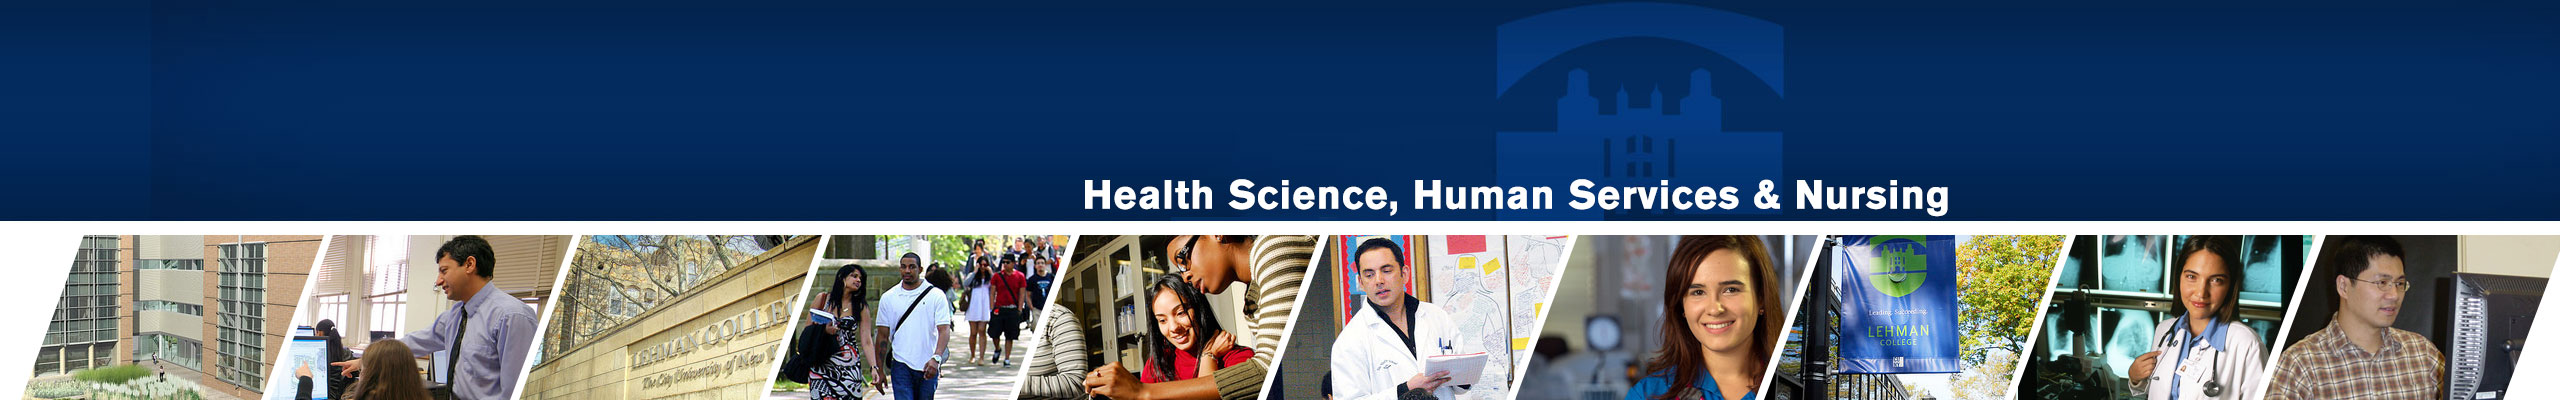 School of Health Sciences, Human Services and Nursing